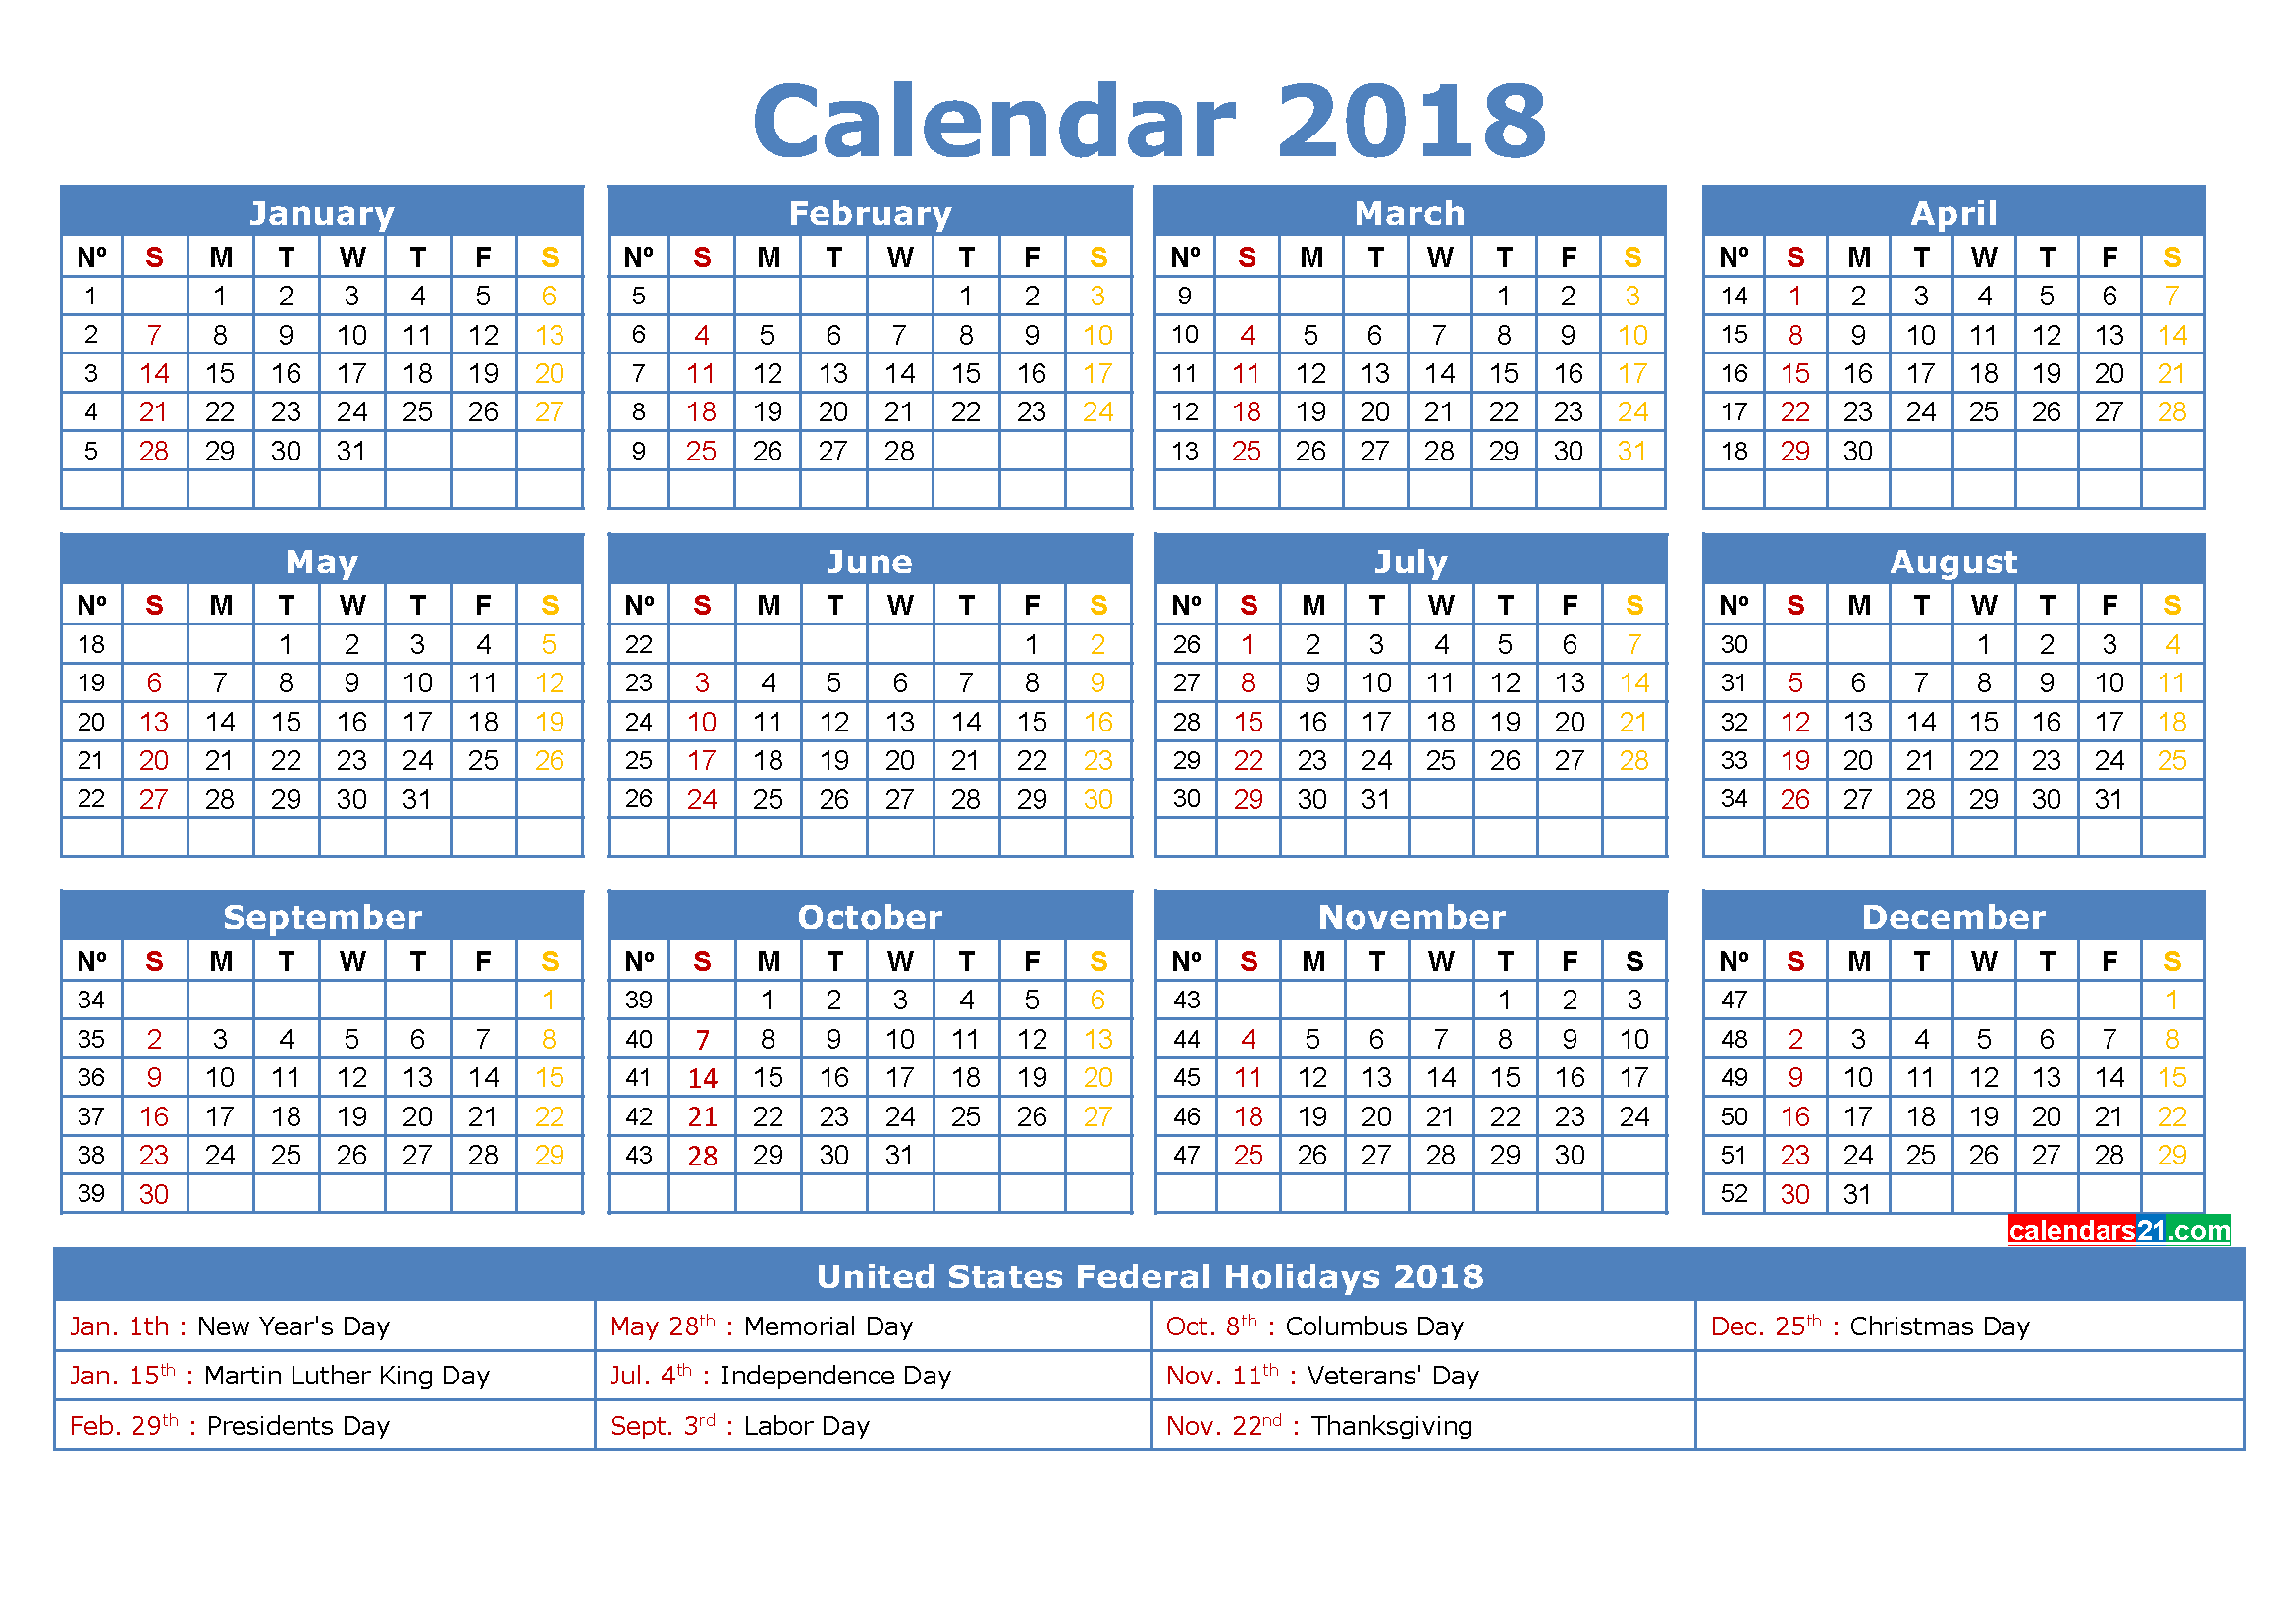 Calendar Templates With Holidays : Calendar with federal holidays printable